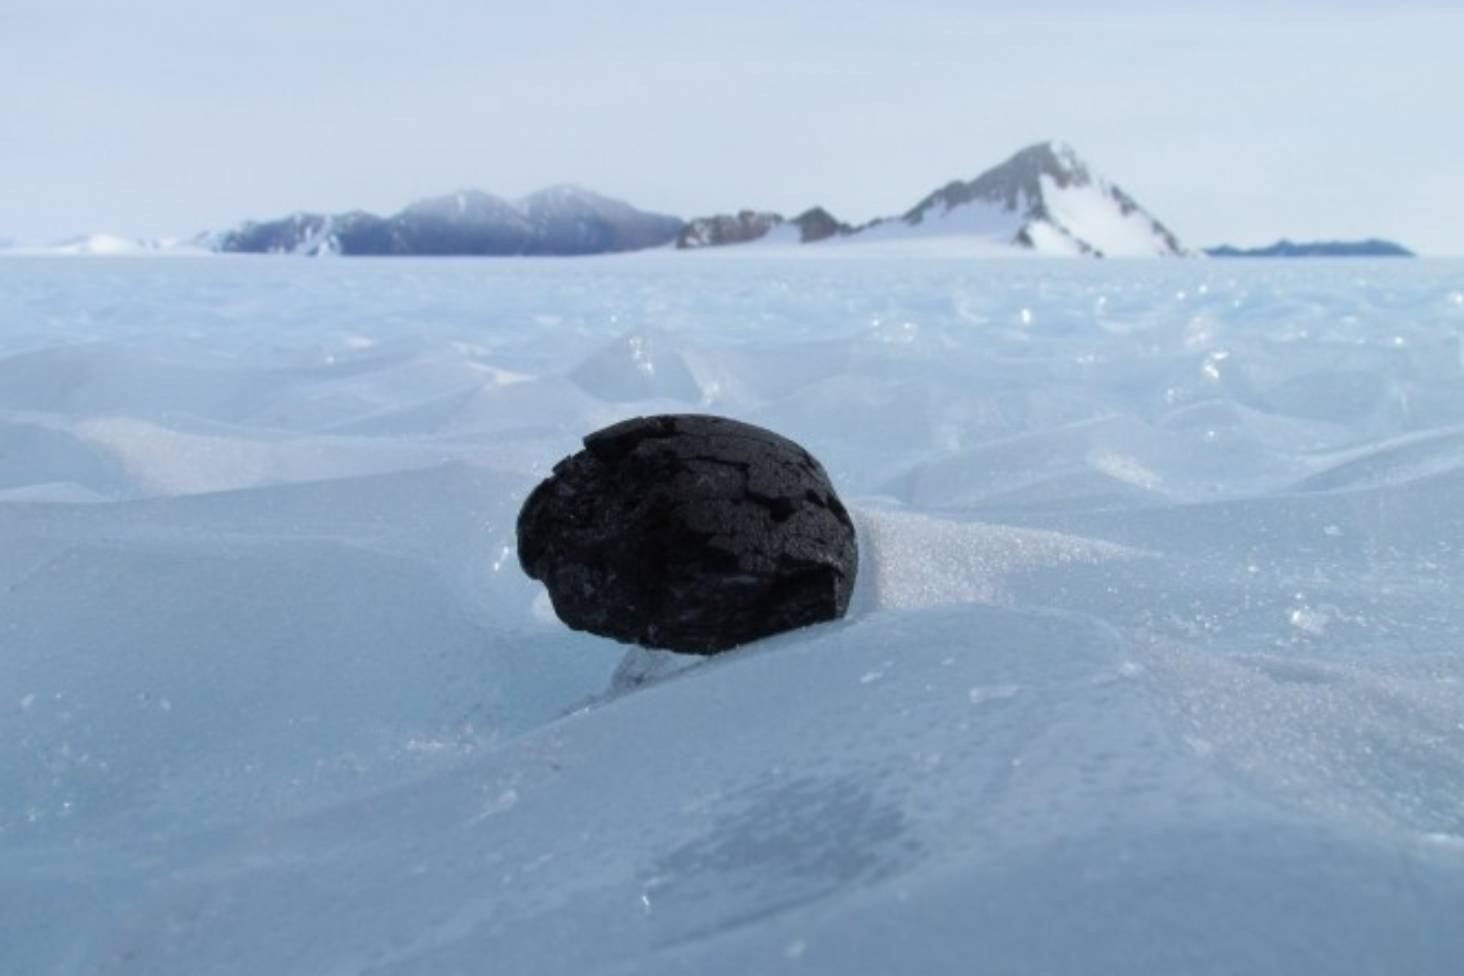 Antarctica provides 'conveyor belt' of meteorites - and clues about history of the solar system | Stuff.co.nz